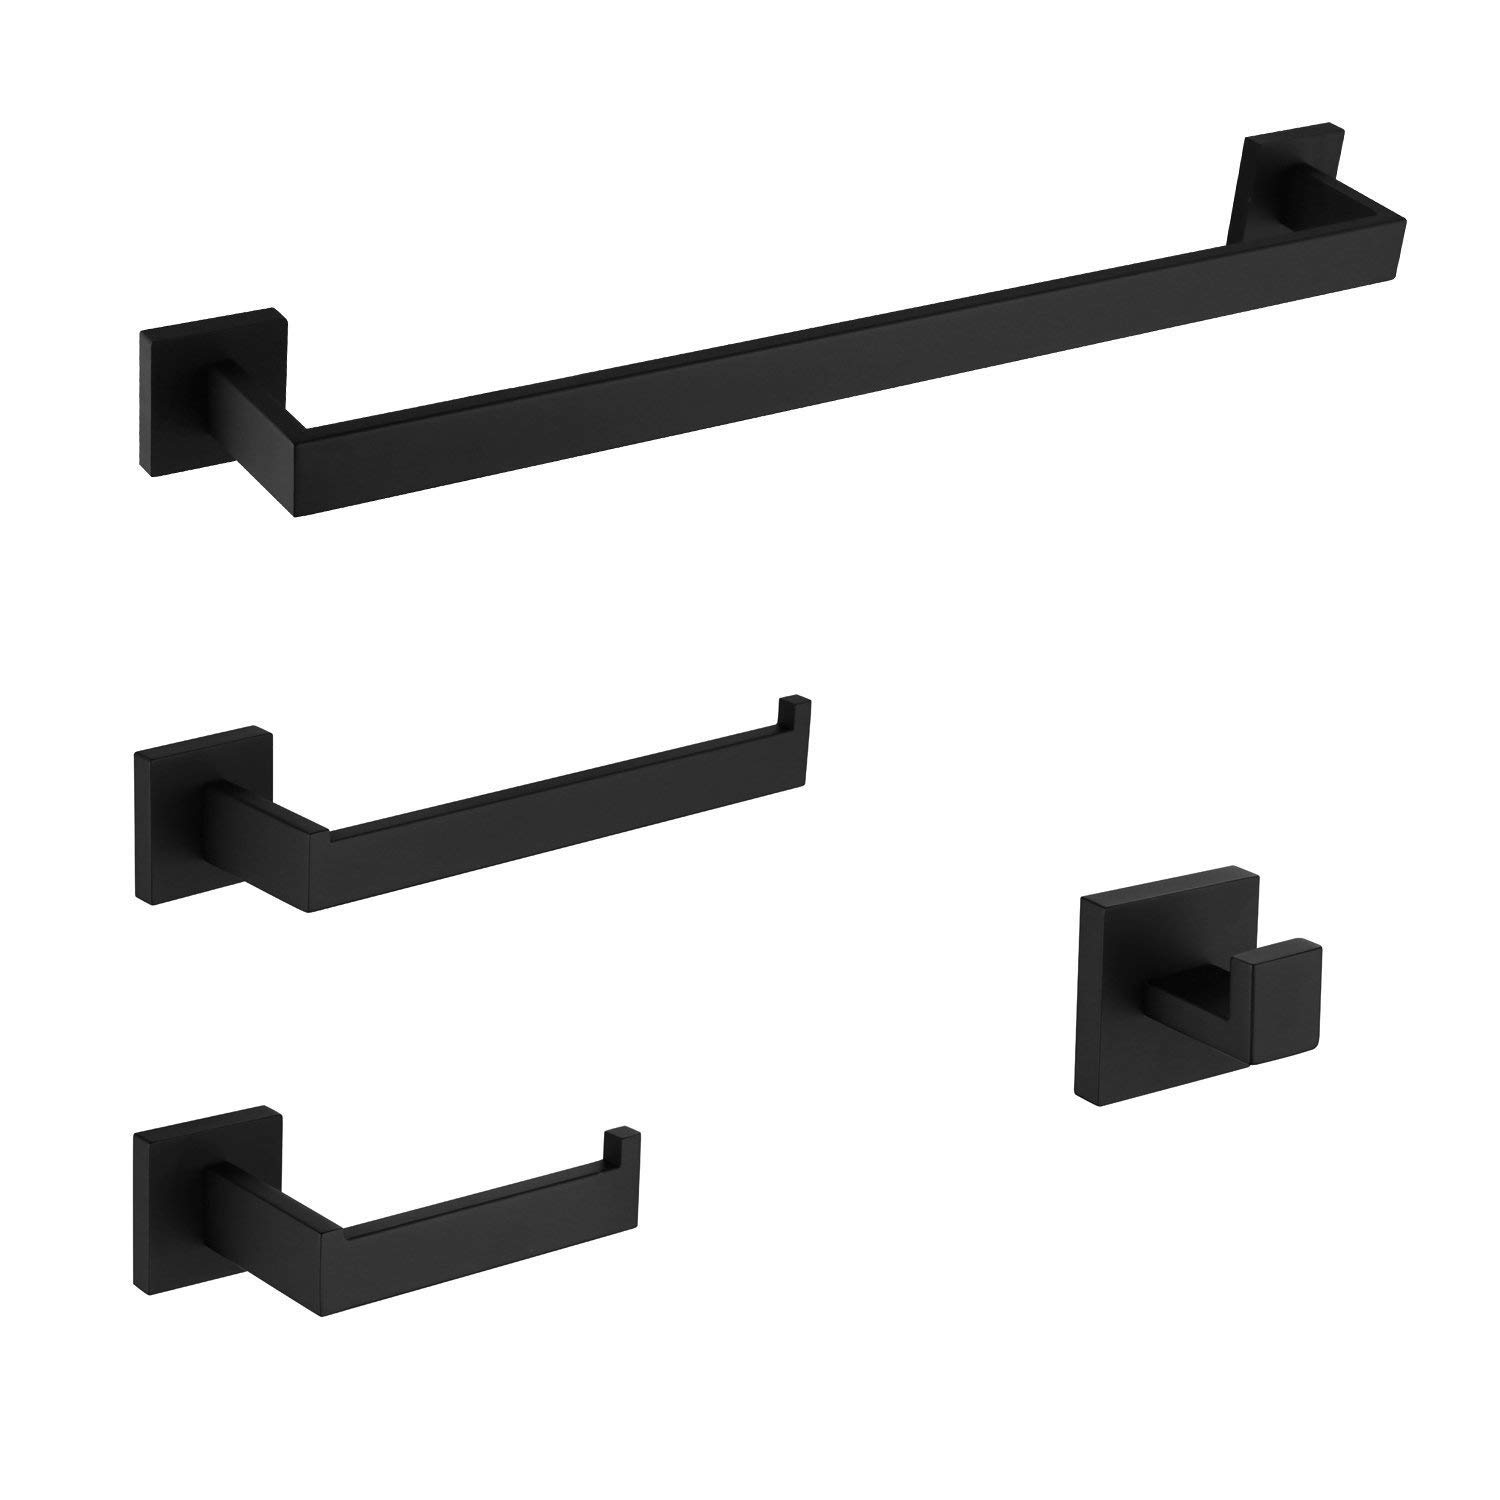 LuckIn Bathroom Hardware Set Stainless Steel, 4-Pieces Bath Towel Bar Set Wall Mounted, Towel Bar Toilet Paper Holder Towel Ring Robe Hook, Black by LuckIn